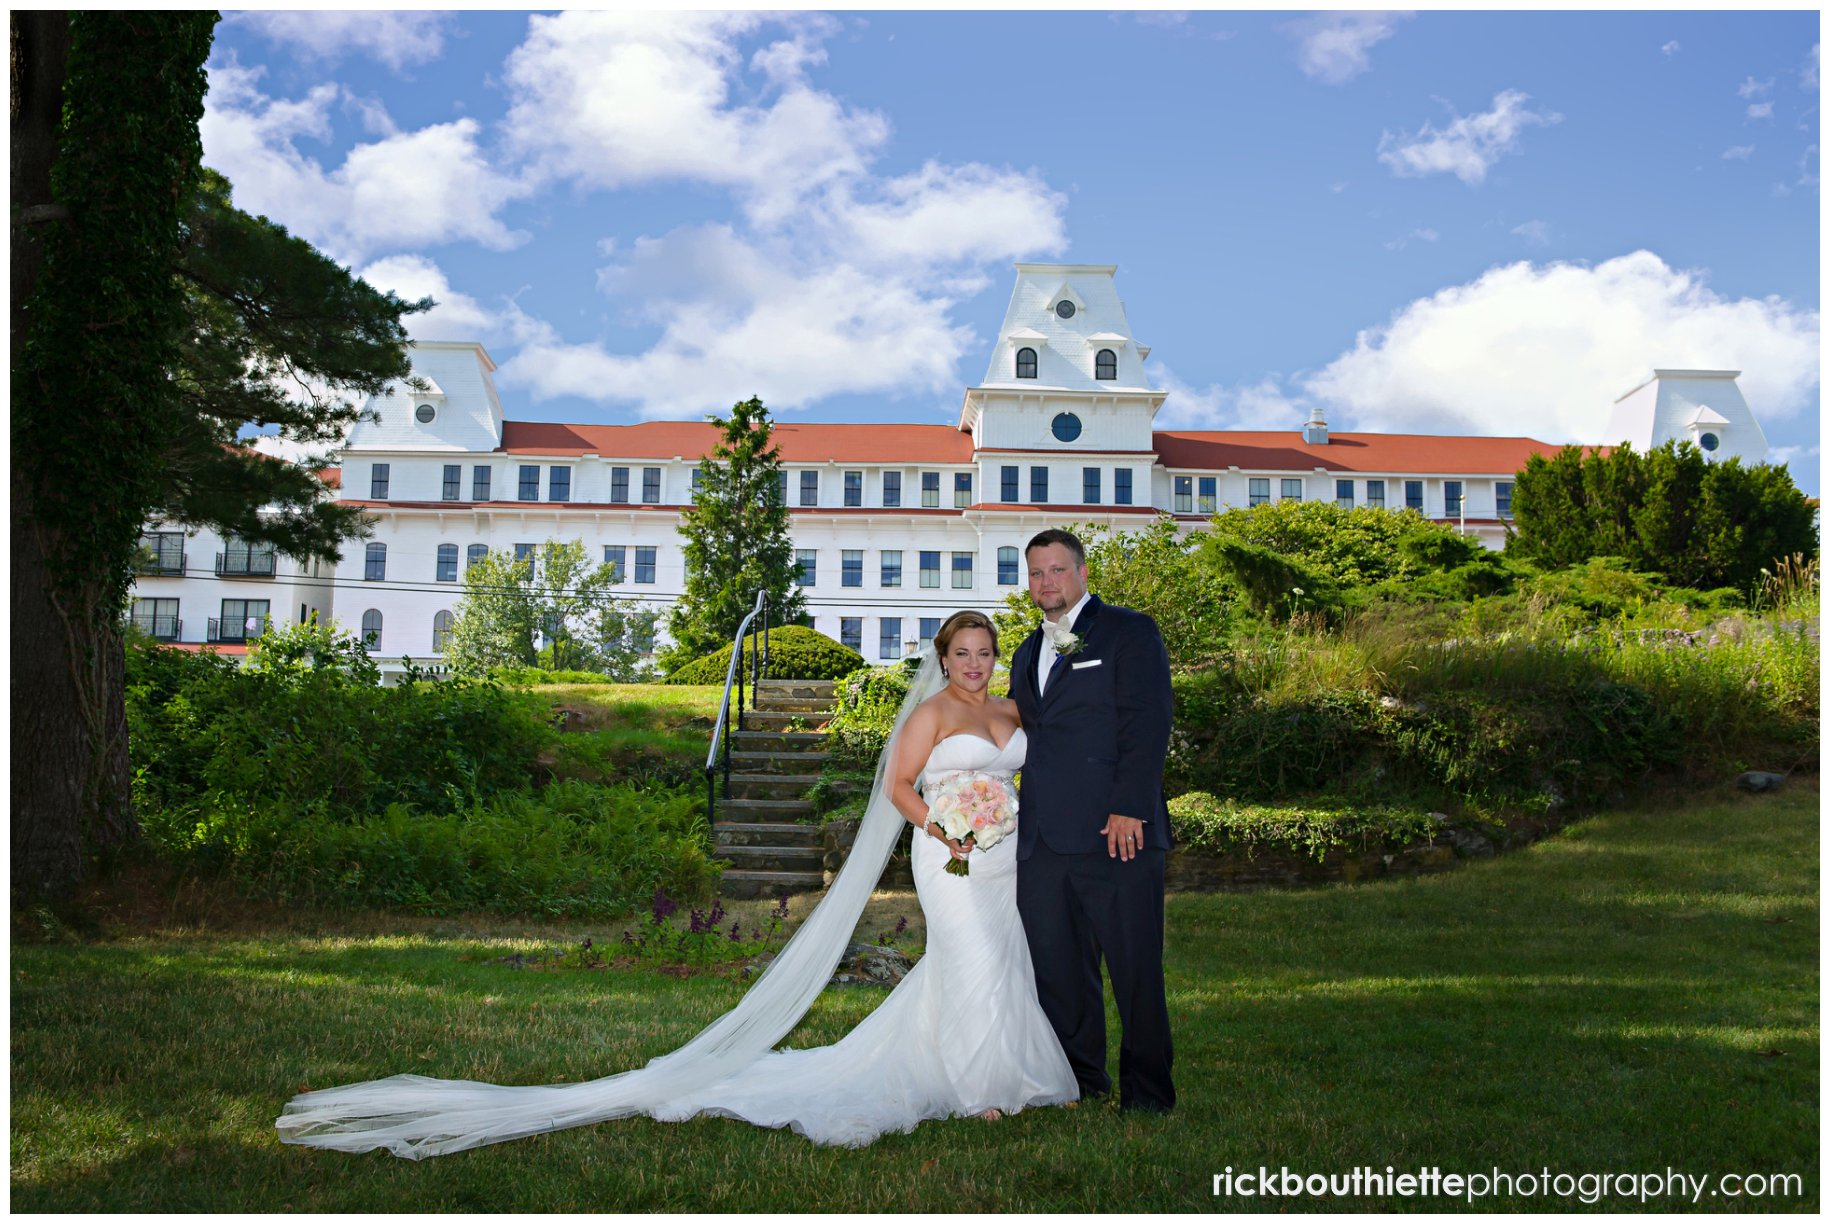 Sea Wedding Bride And Groom In The Garden With Hotel Background At Wentworth By